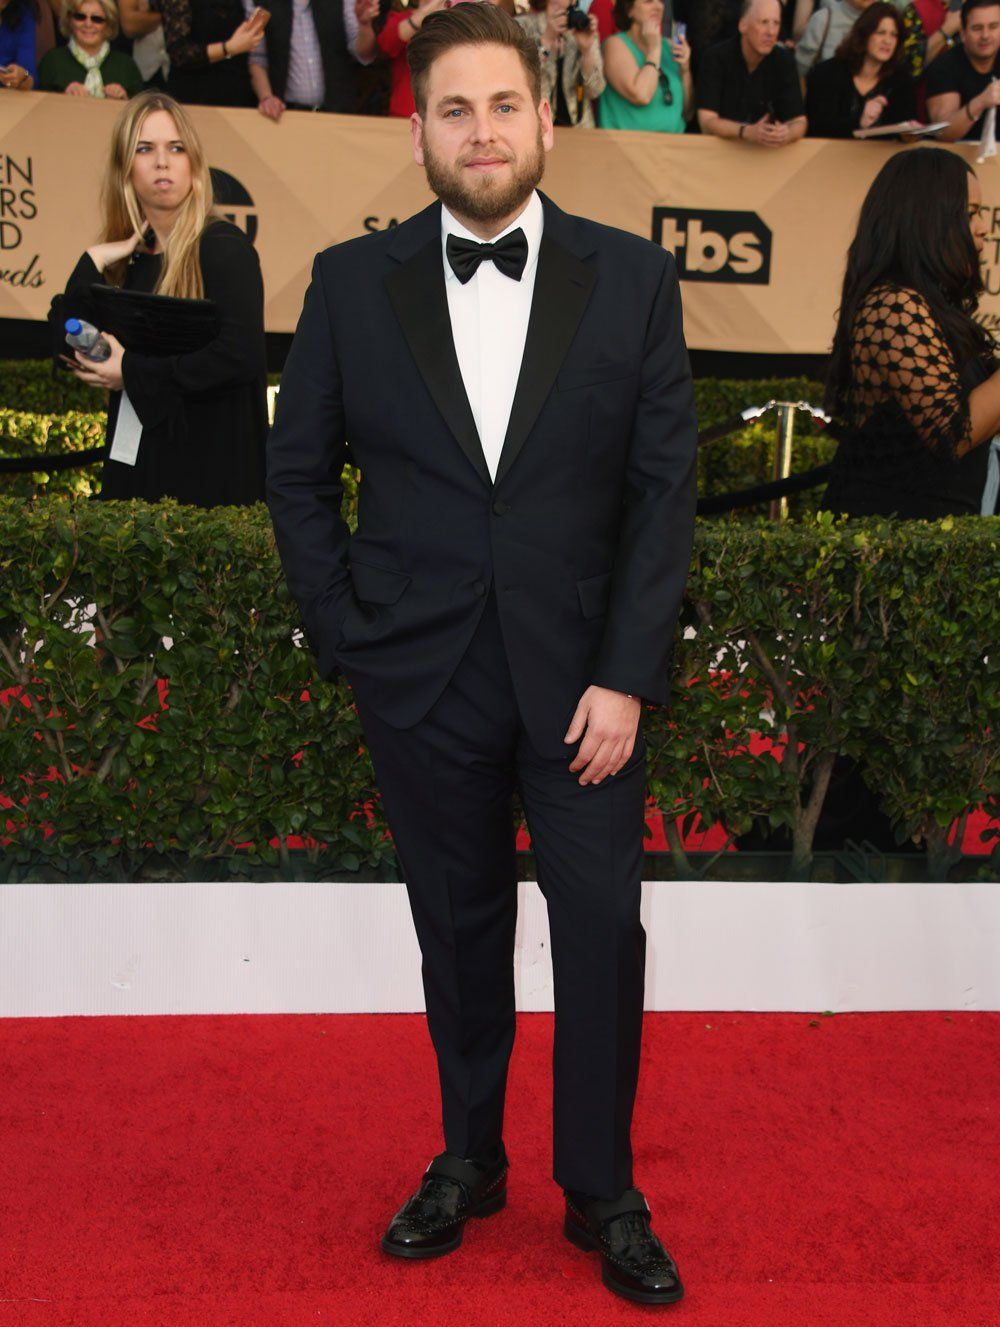 Jonah Hill Shows Off His Weight Loss (Again) At SAG Awards